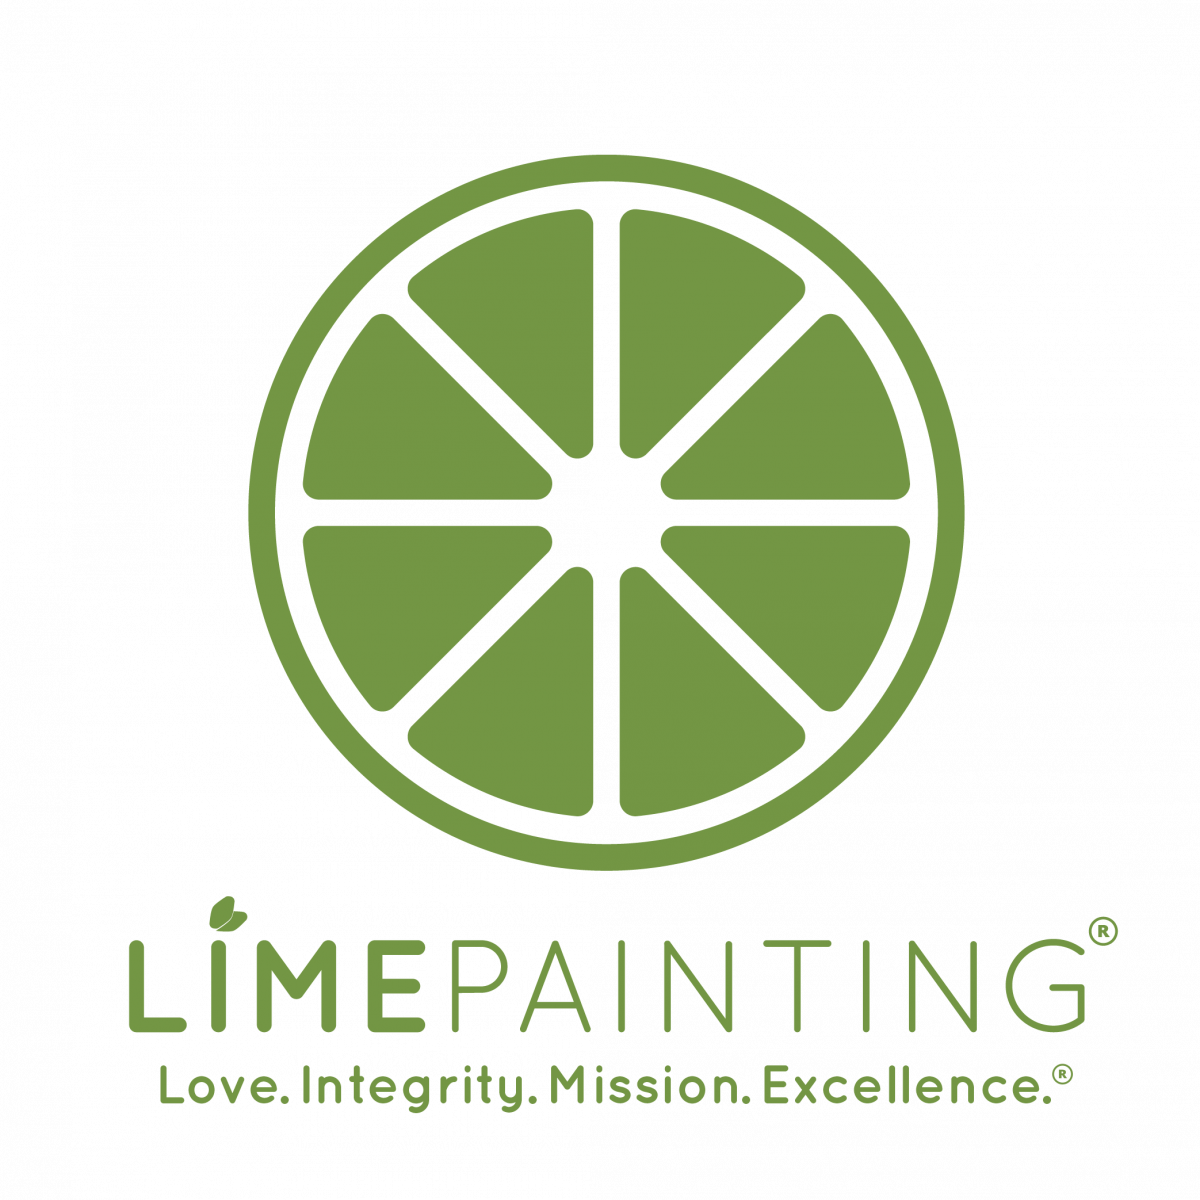 LIME Painting Selects SeoSamba to Launches New Website for its Emerging Franchise Brand